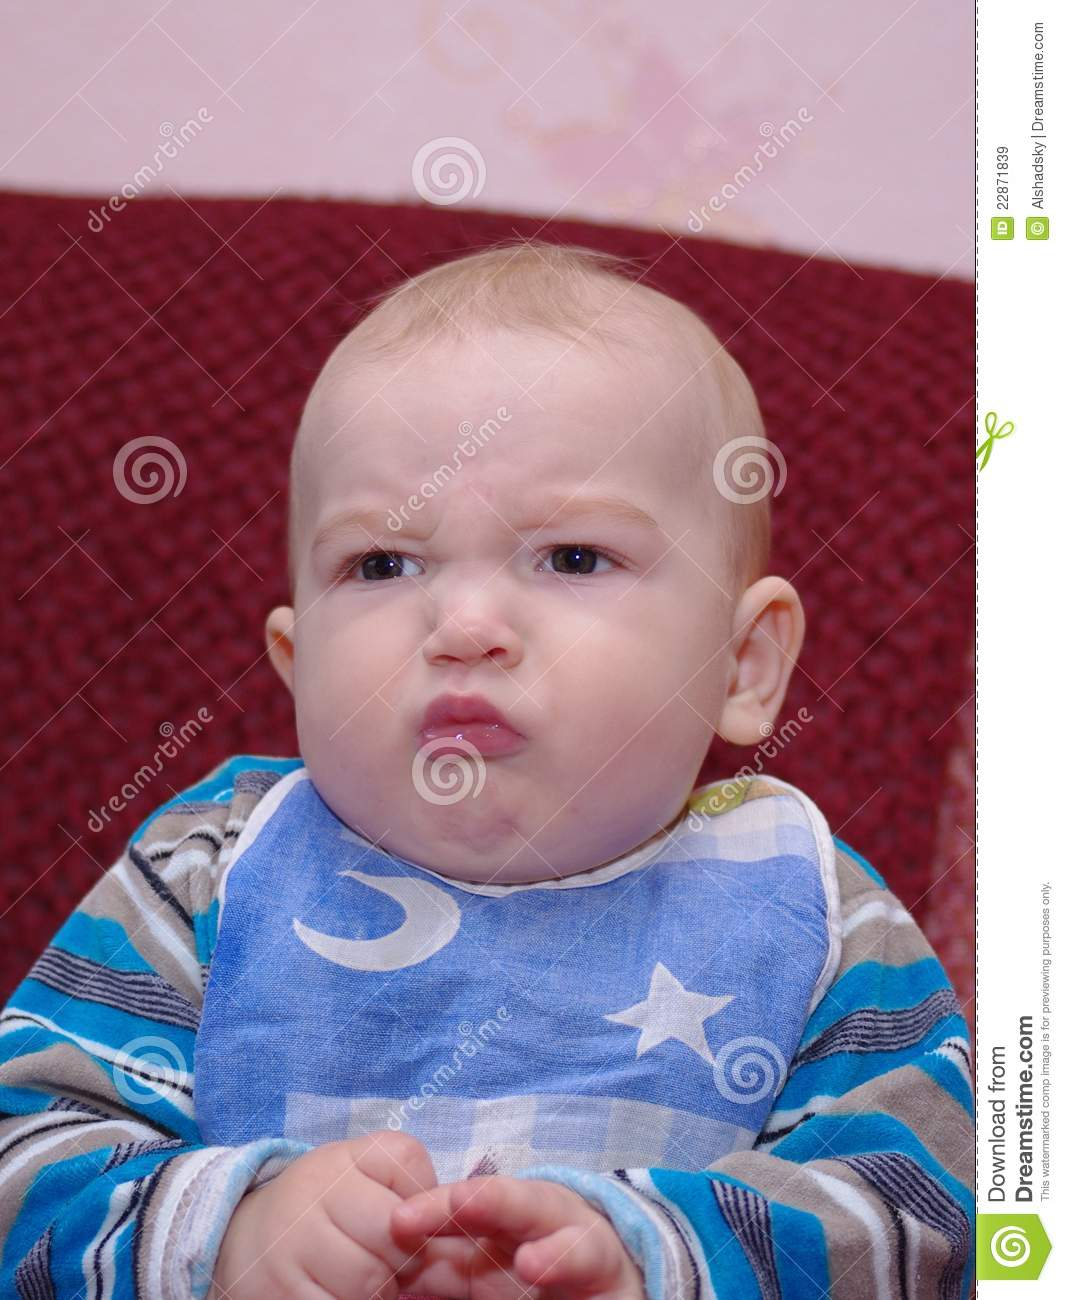 Angry Boy Royalty Free Stock Images - Image: 22871839